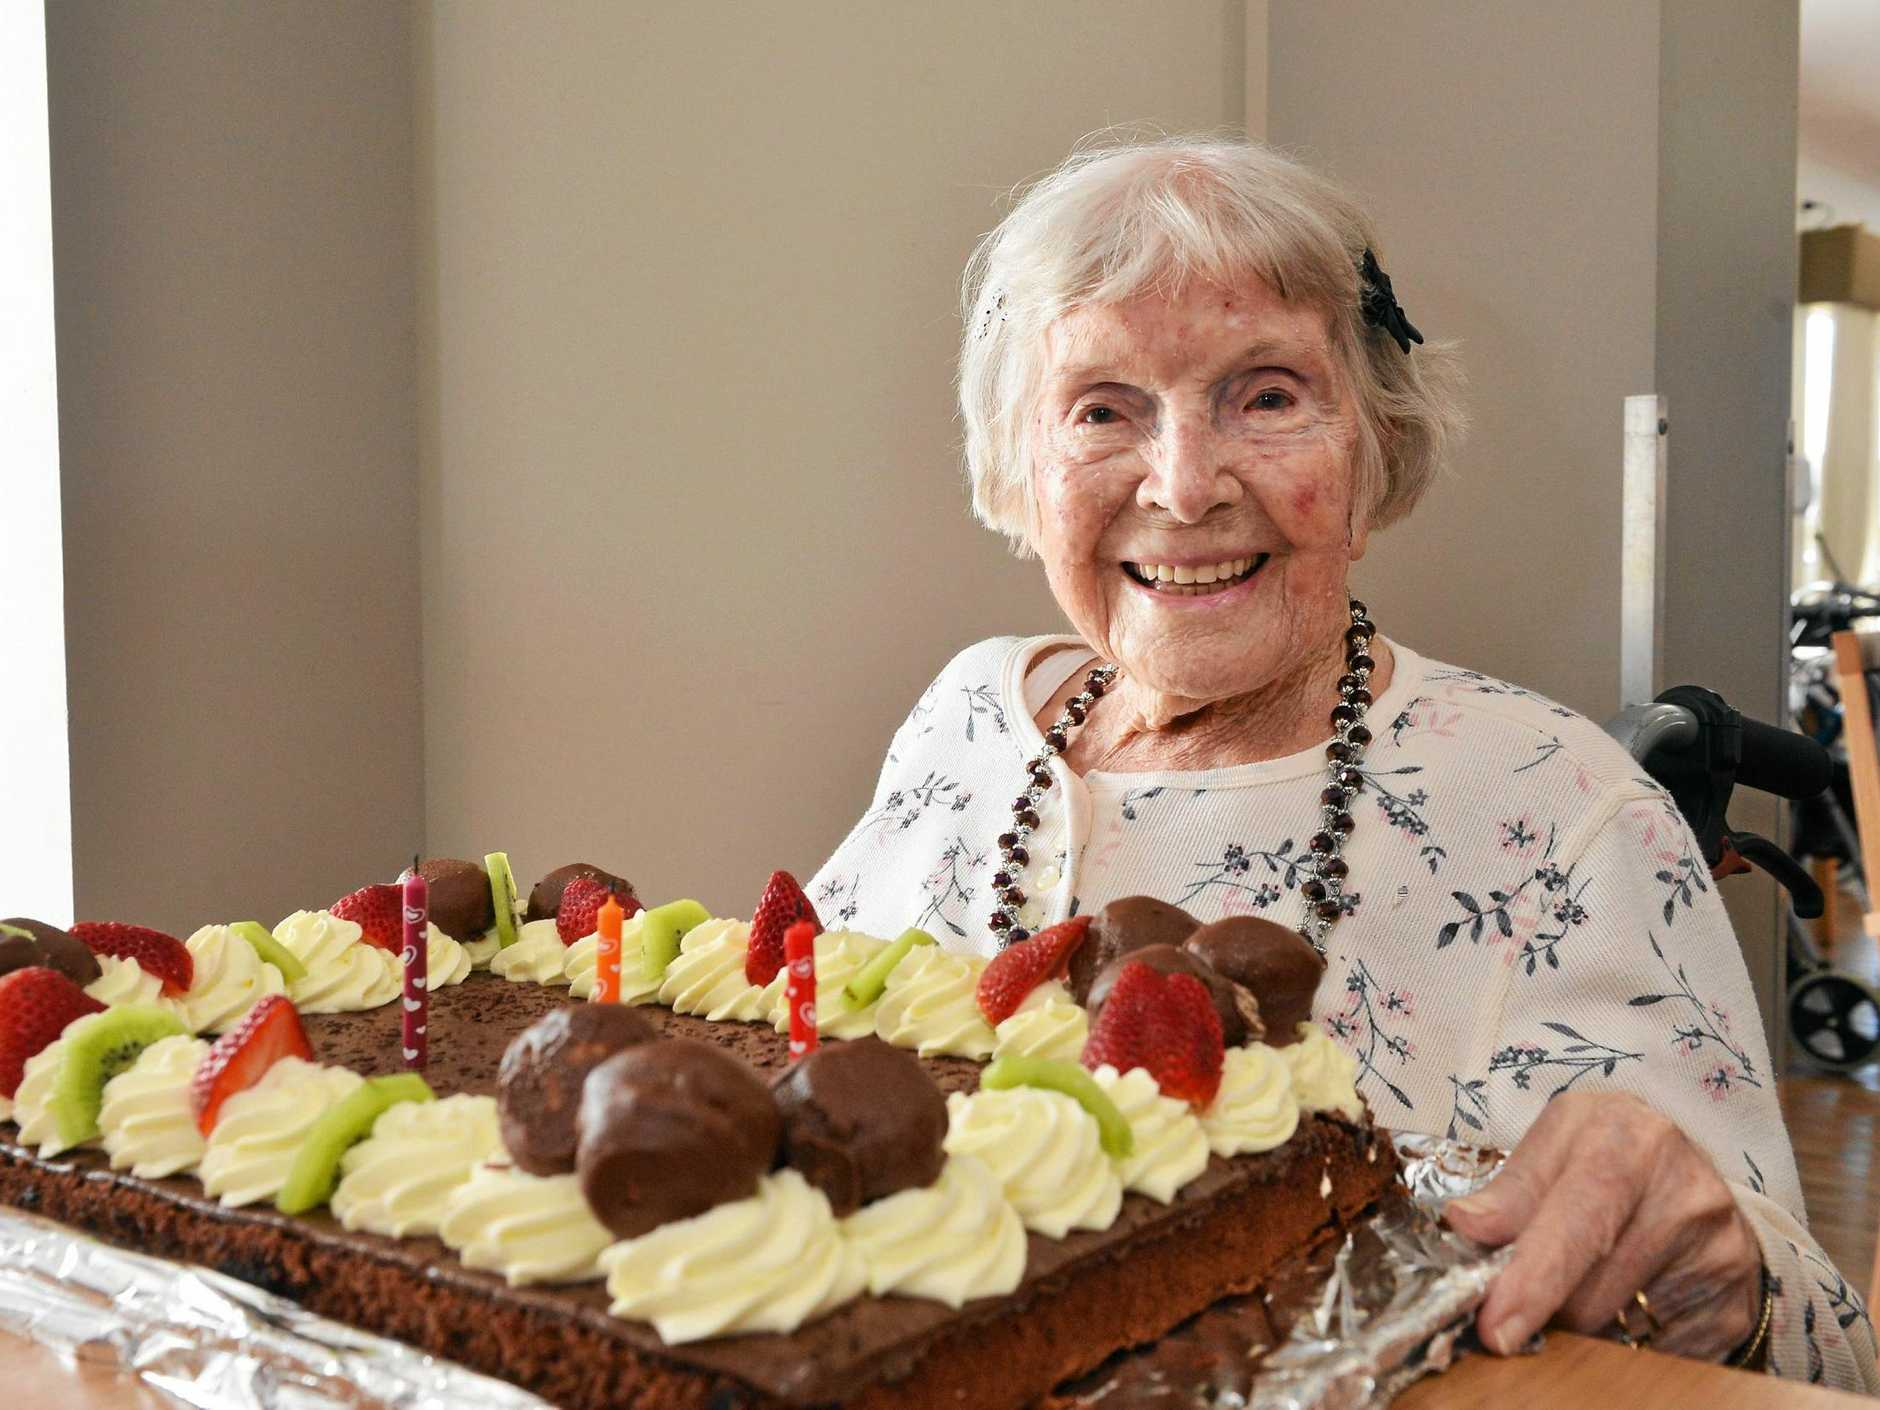 HAPPY BIRTHDAY: Ailsa Ryder enjoyed her cake at a special birthday celebration hosted by Seasons Care Community Golden Beach, where she also celebrated her 100th birthday three years ago.